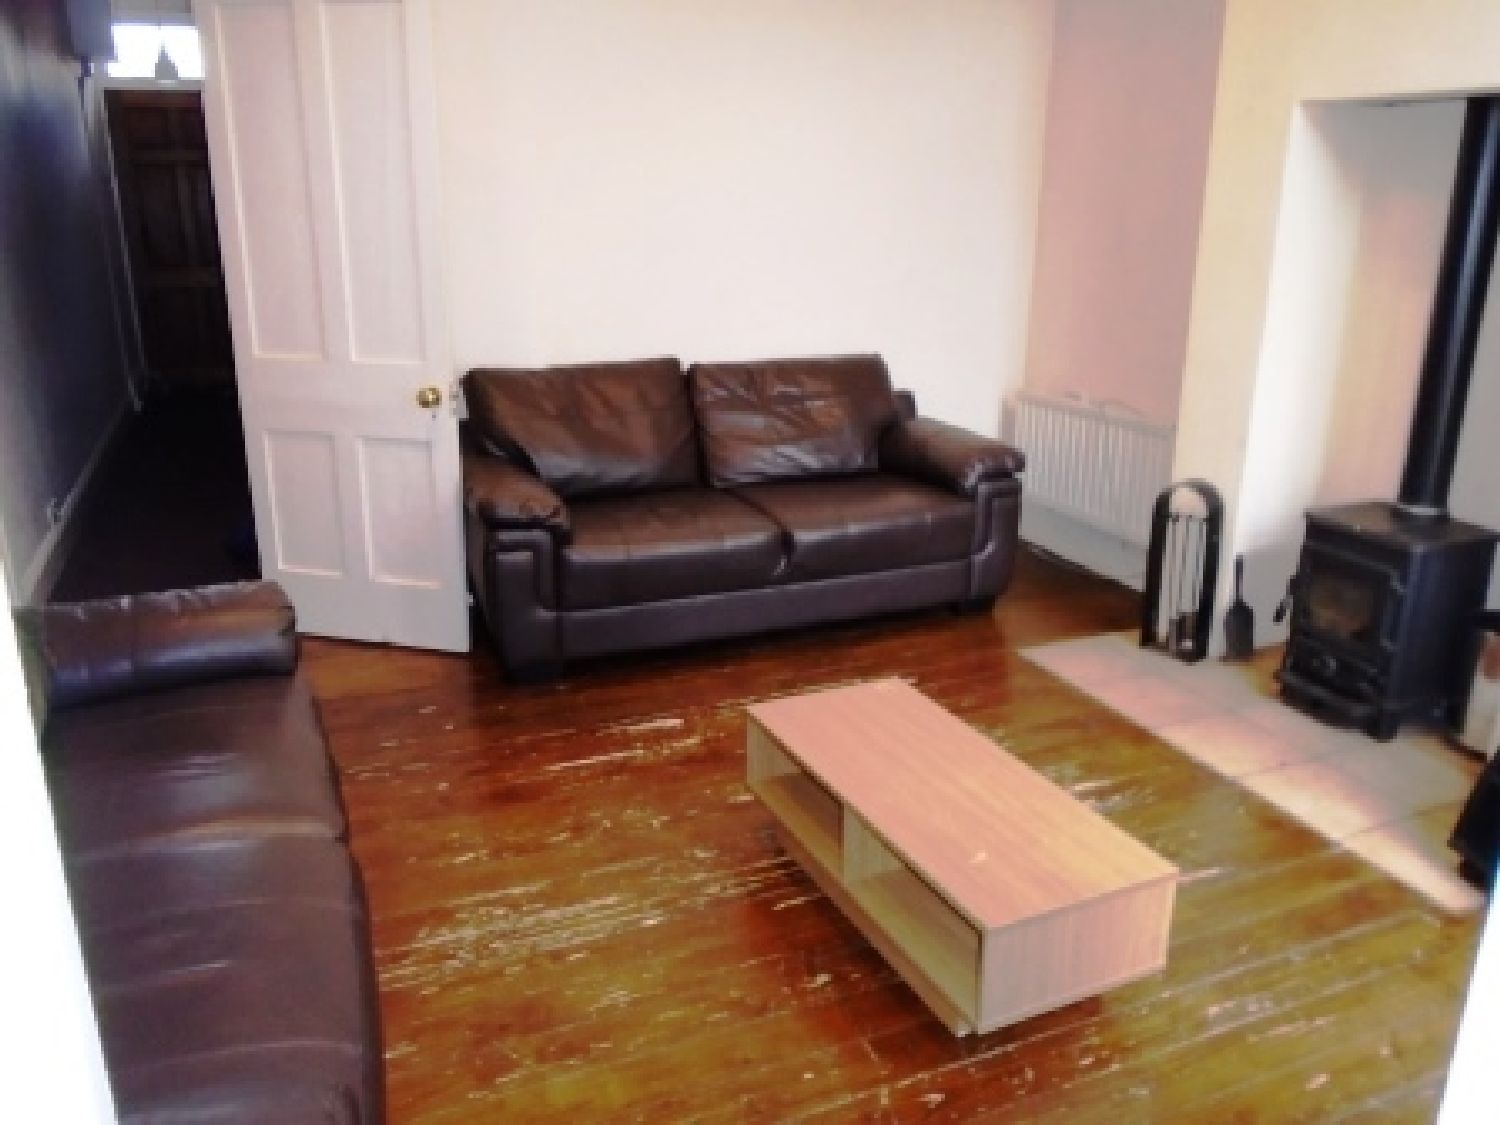 4 Bedrooms House Share for rent in Daisy Road, Edgbaston, West Midlands, B16 9DZ